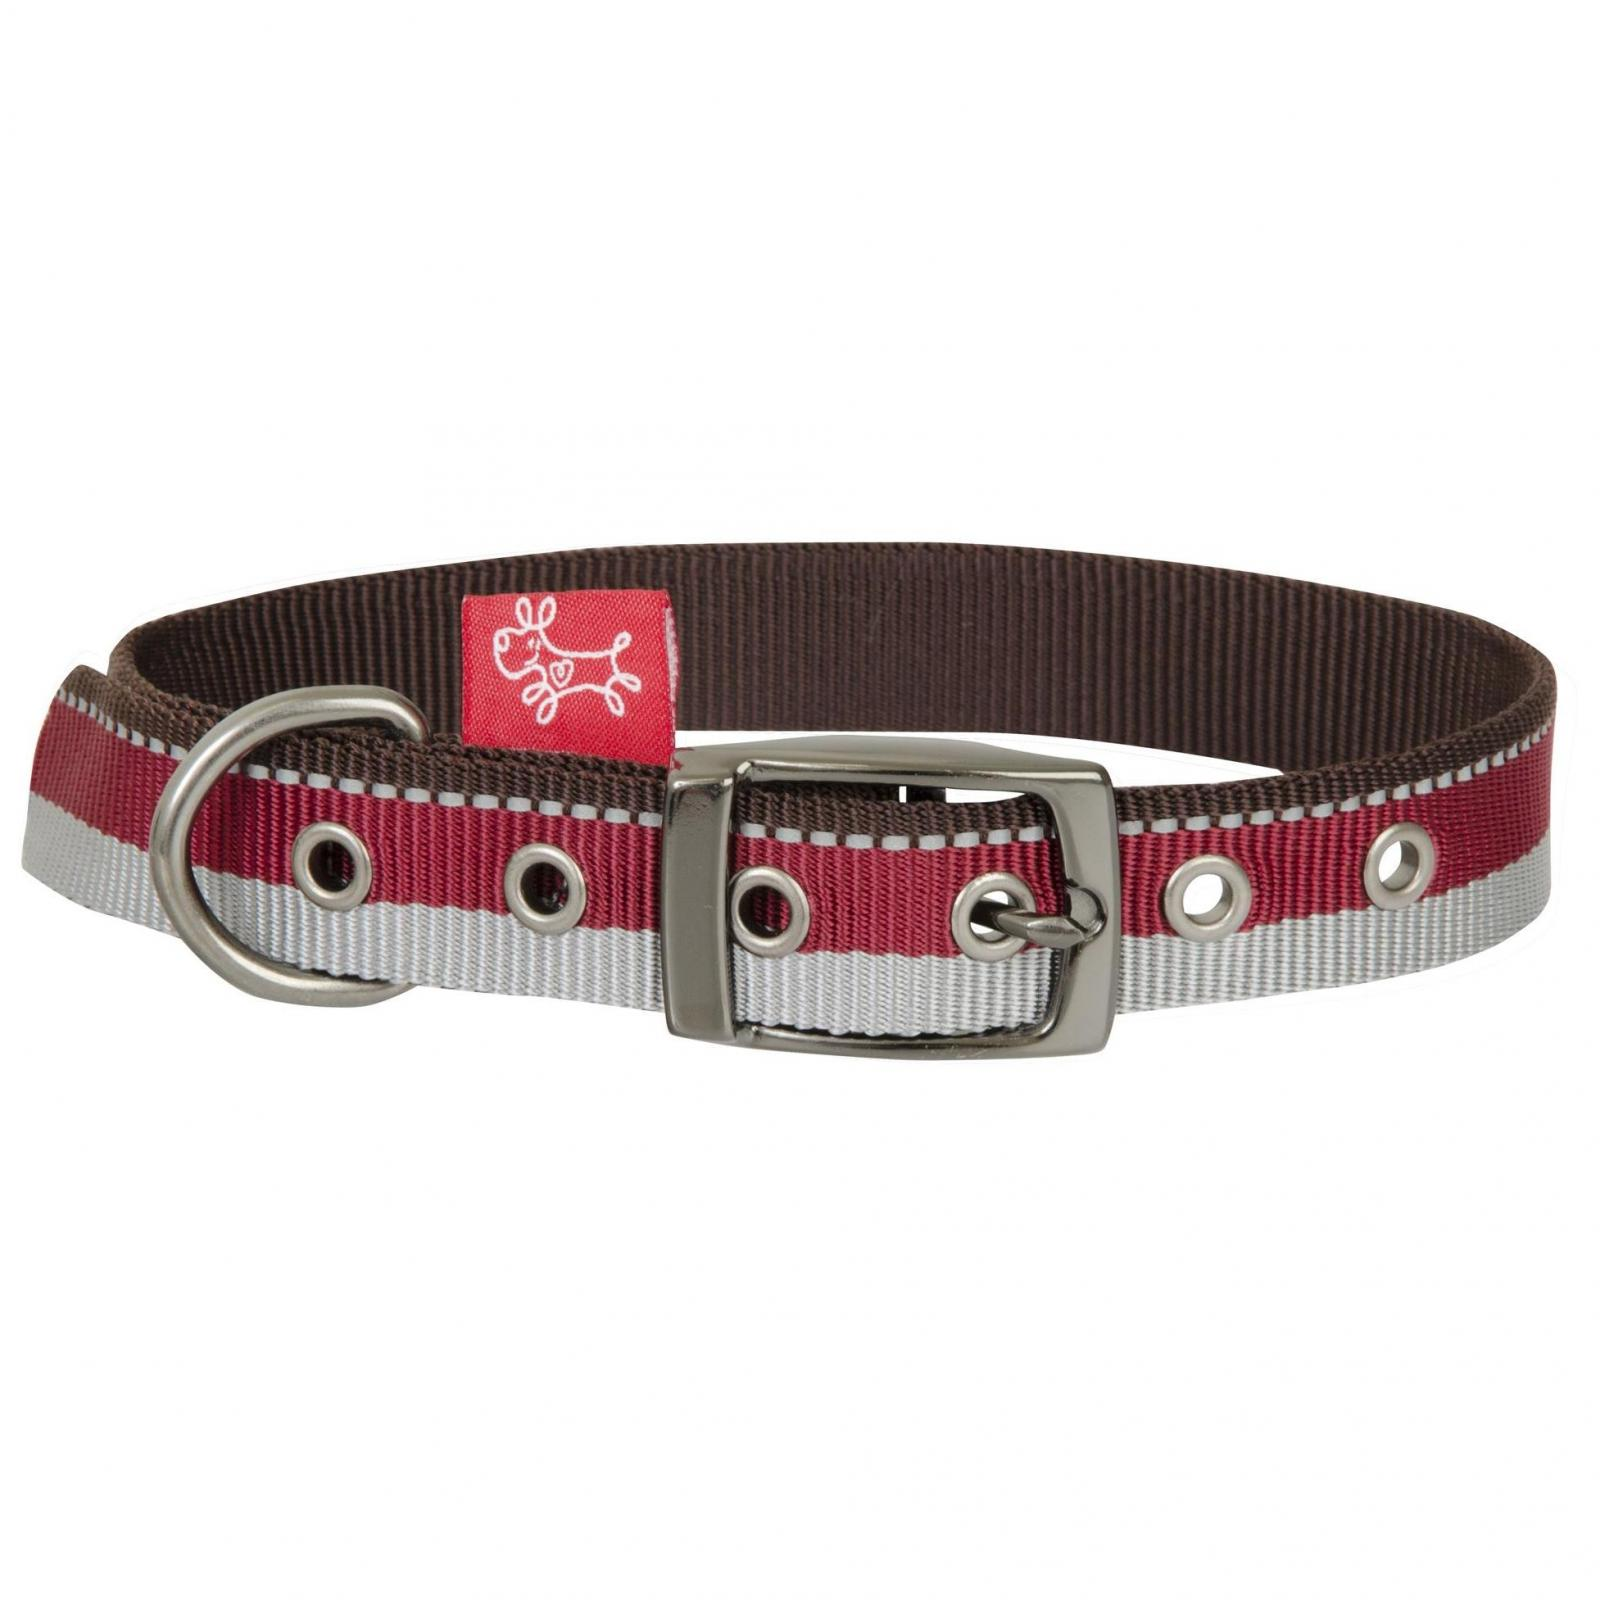 Yours Droolly Yours Droolly Tricolour Buckle Collar Burgundy